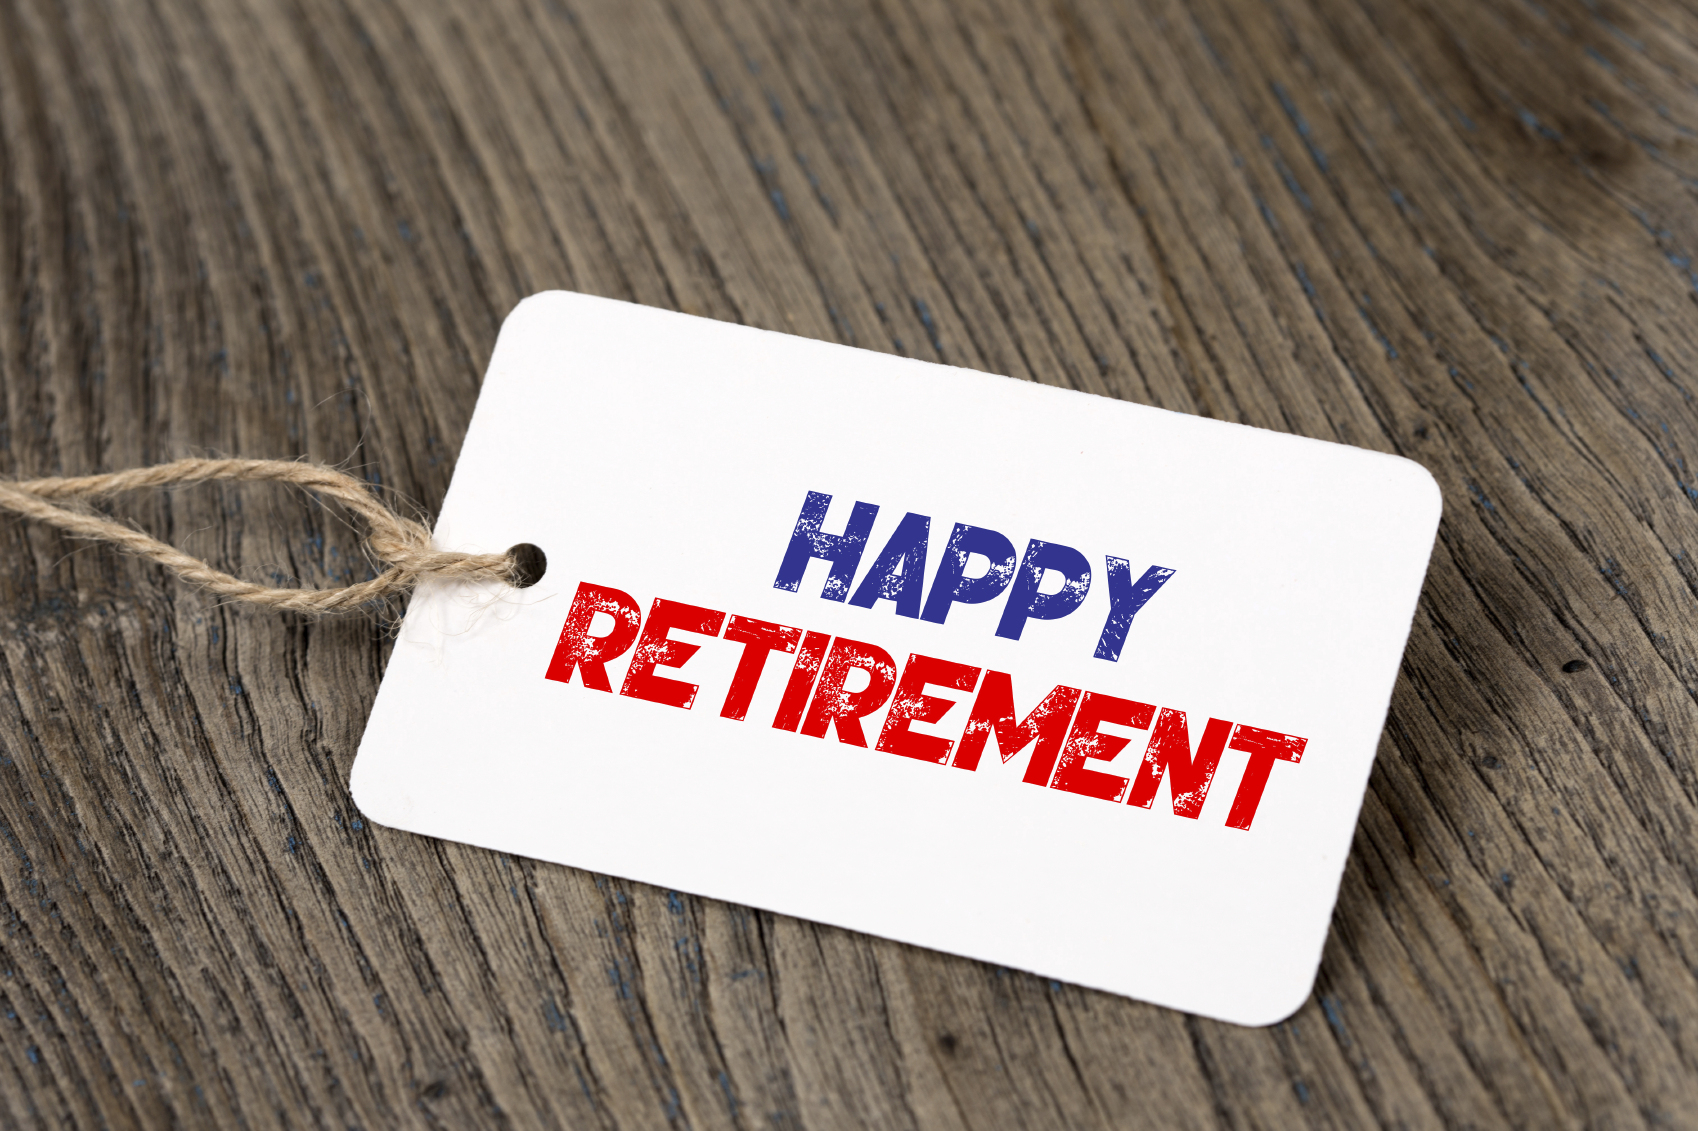 the joy of a rich retirement · gallagher financial group the joy of a rich retirement posted by mitch posted in gallagher financial group